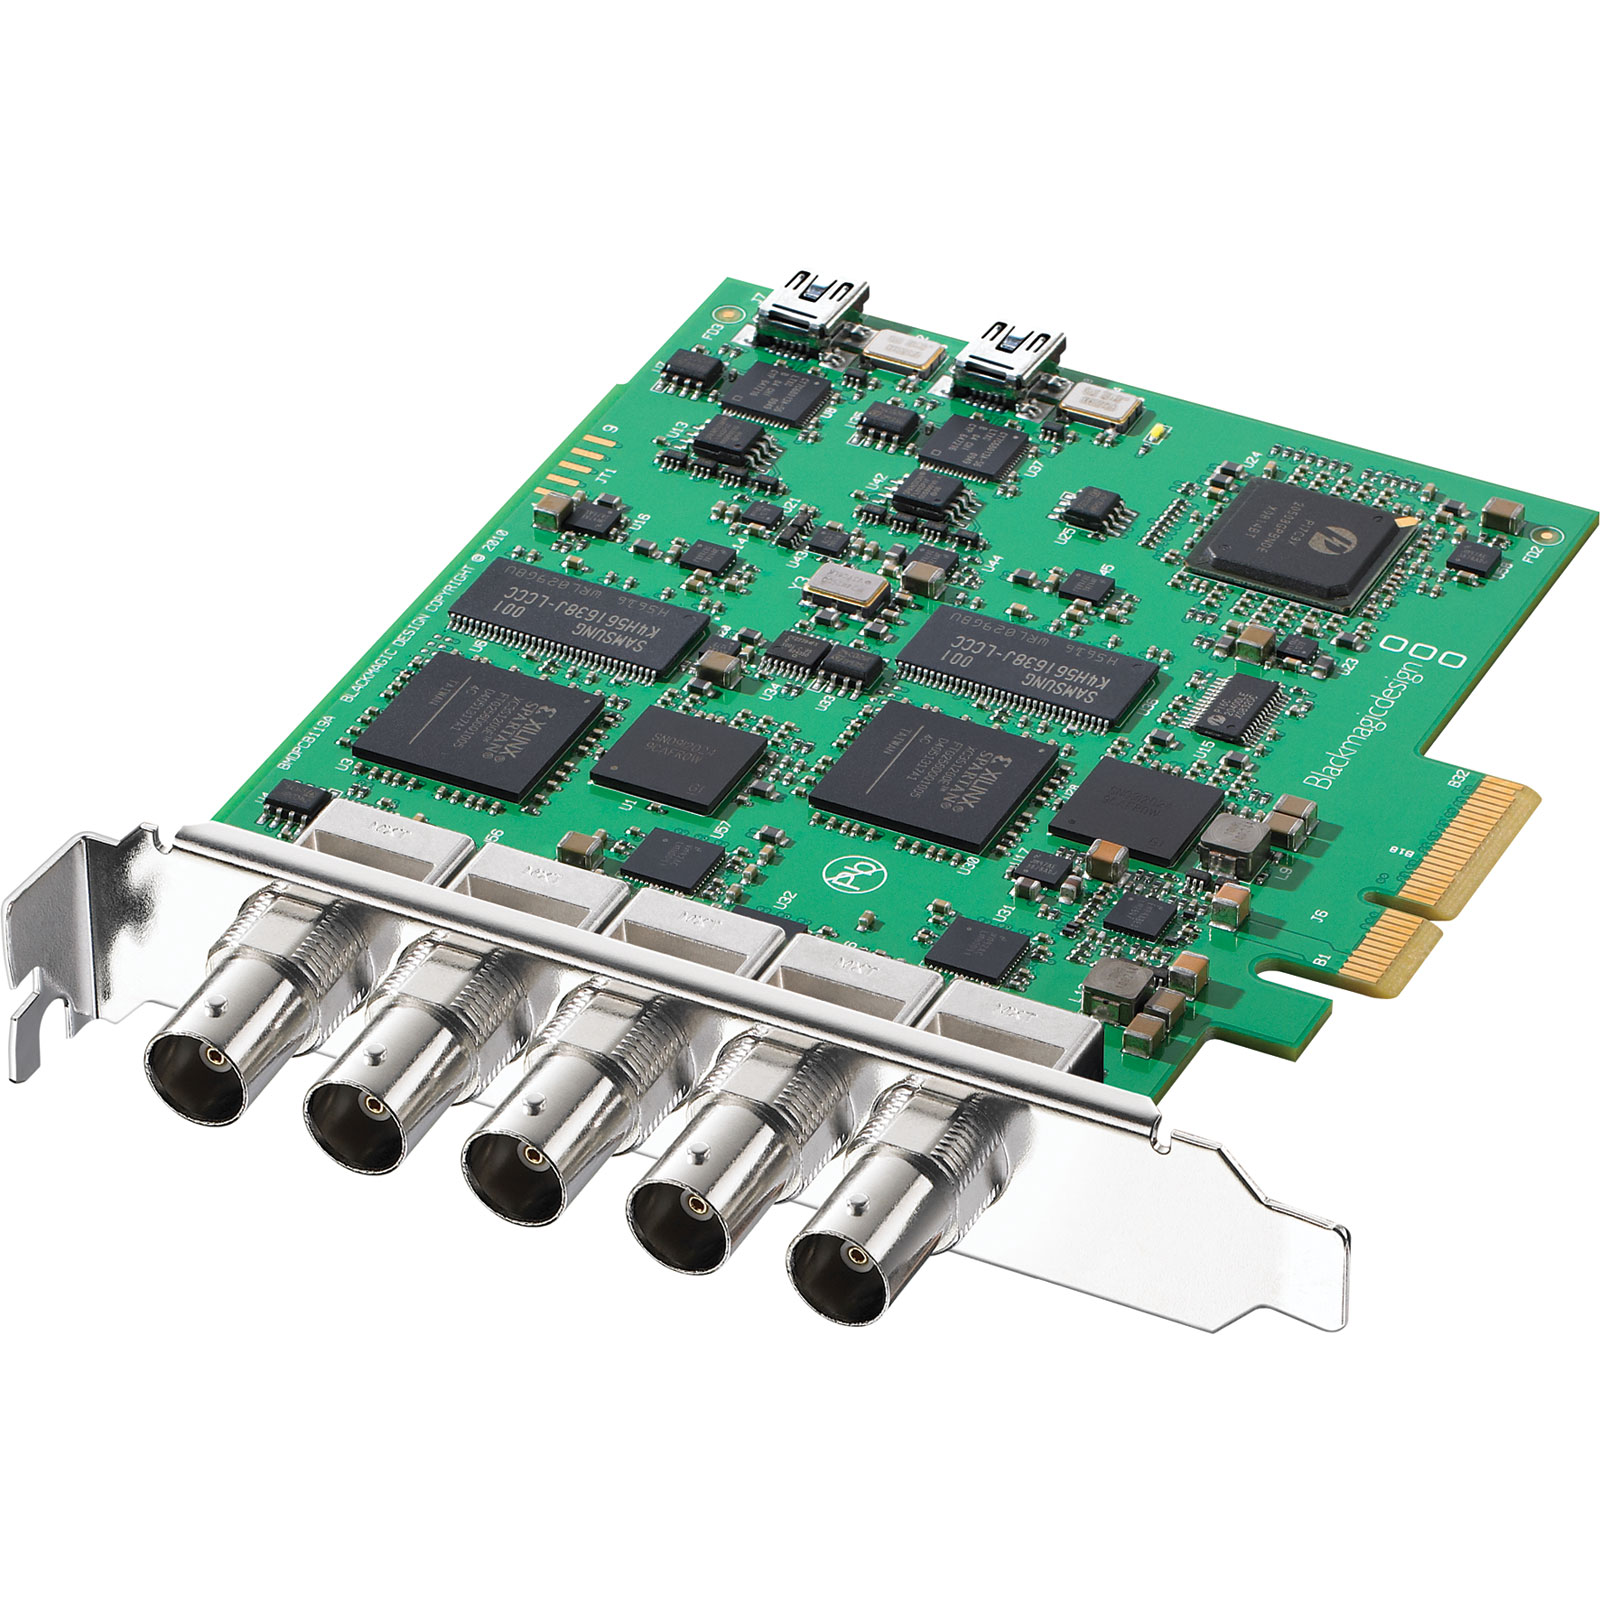 Carte d'acquisition Blackmagic Design DeckLink Duo Carte d'acquisition Haute Définition PCI Express 4x